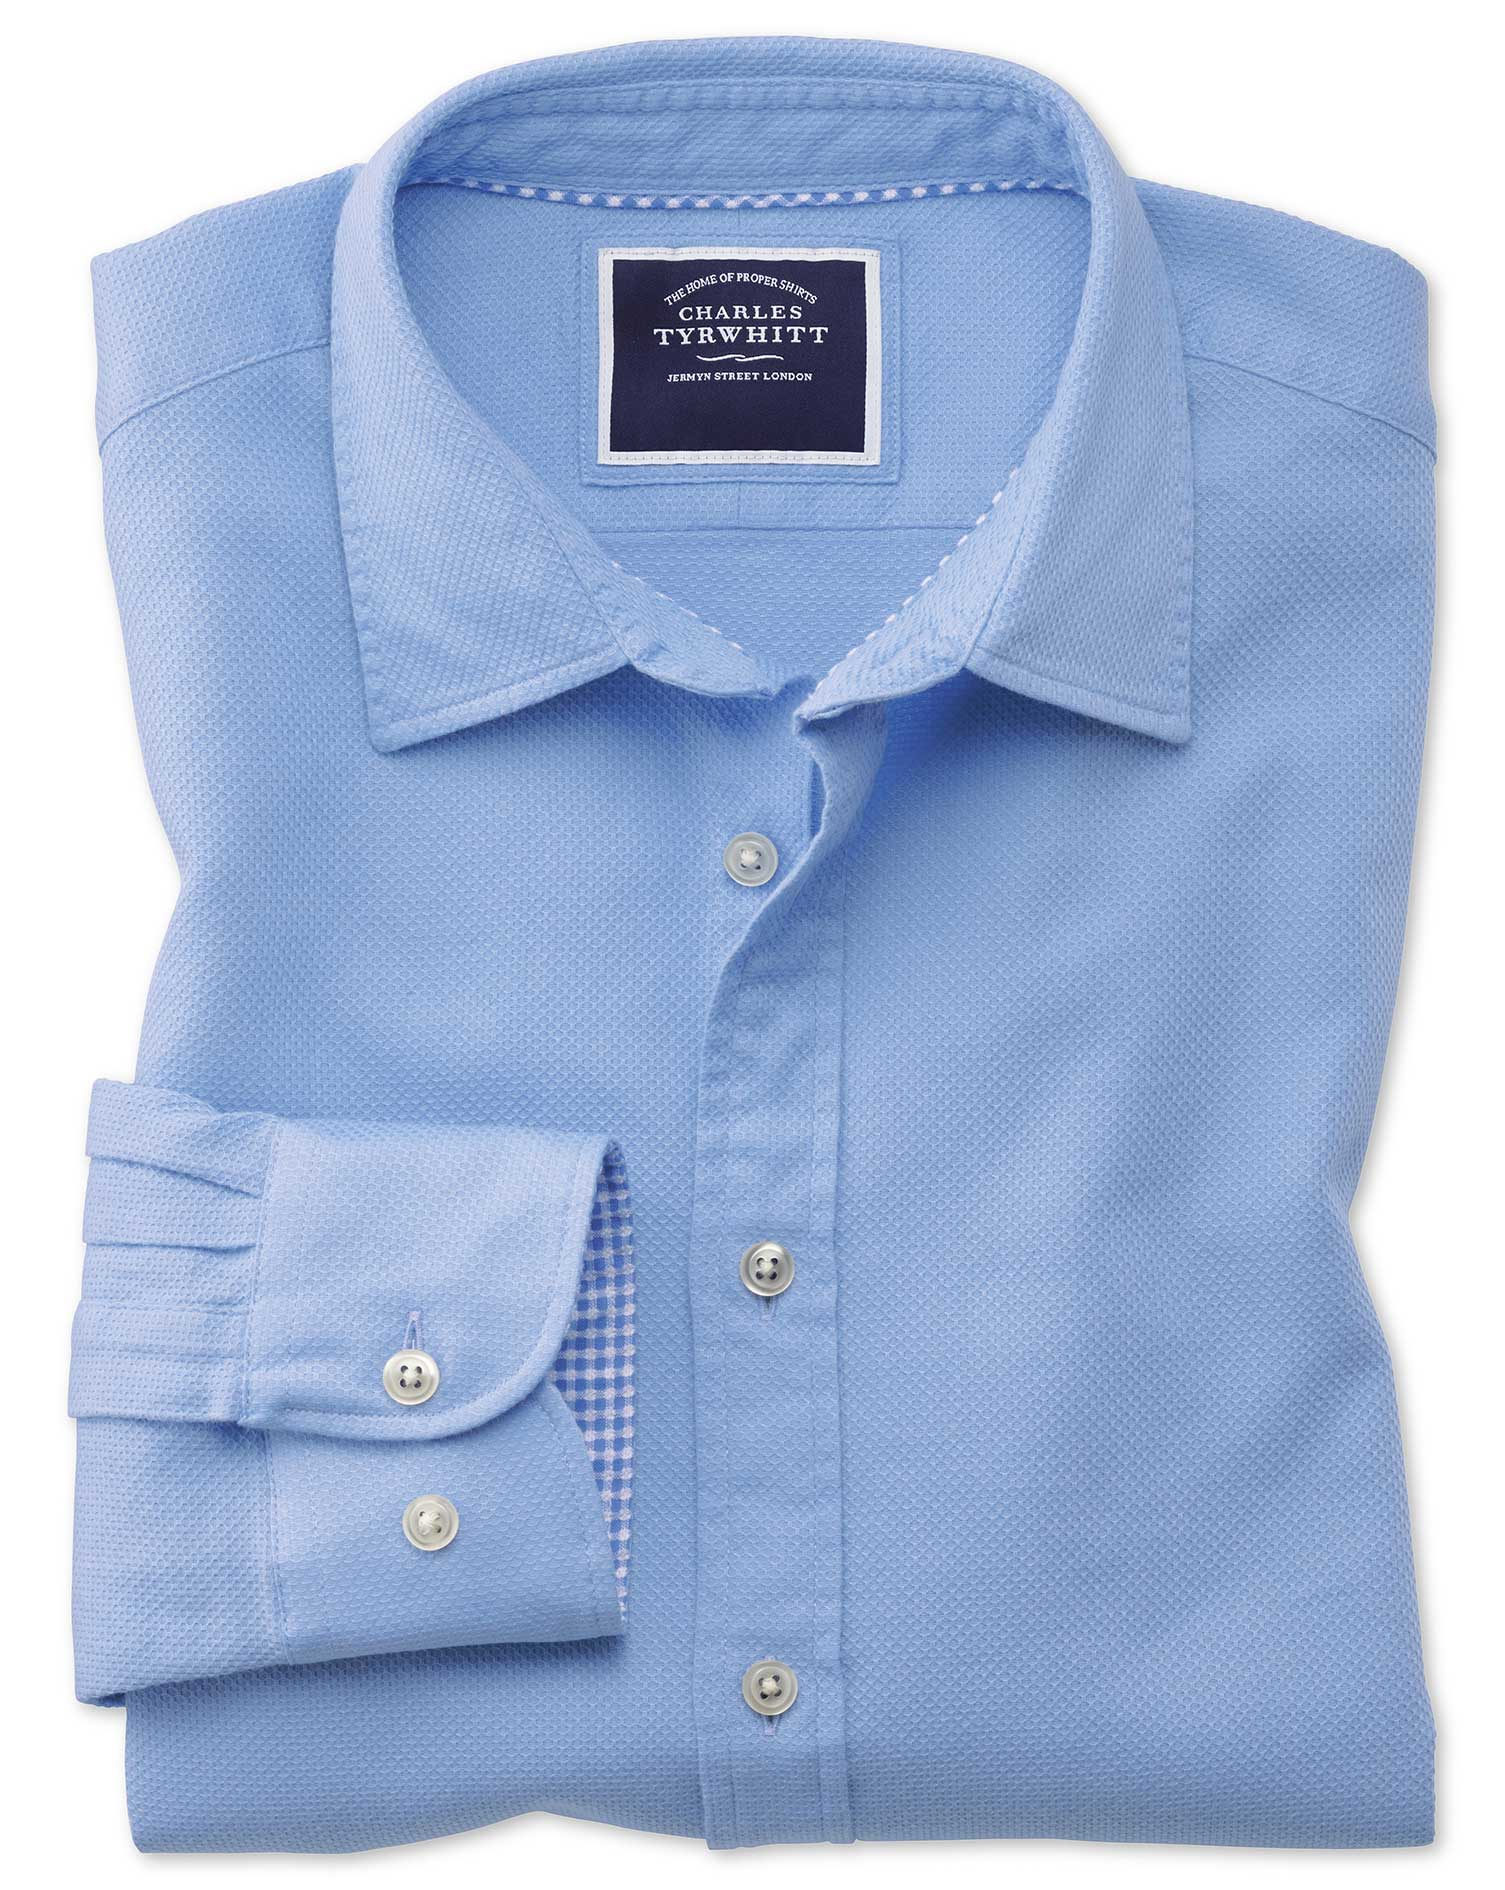 Classic Fit Washed Bright Blue Honeycomb Textured Cotton Shirt Single Cuff Size Large by Charles Tyr